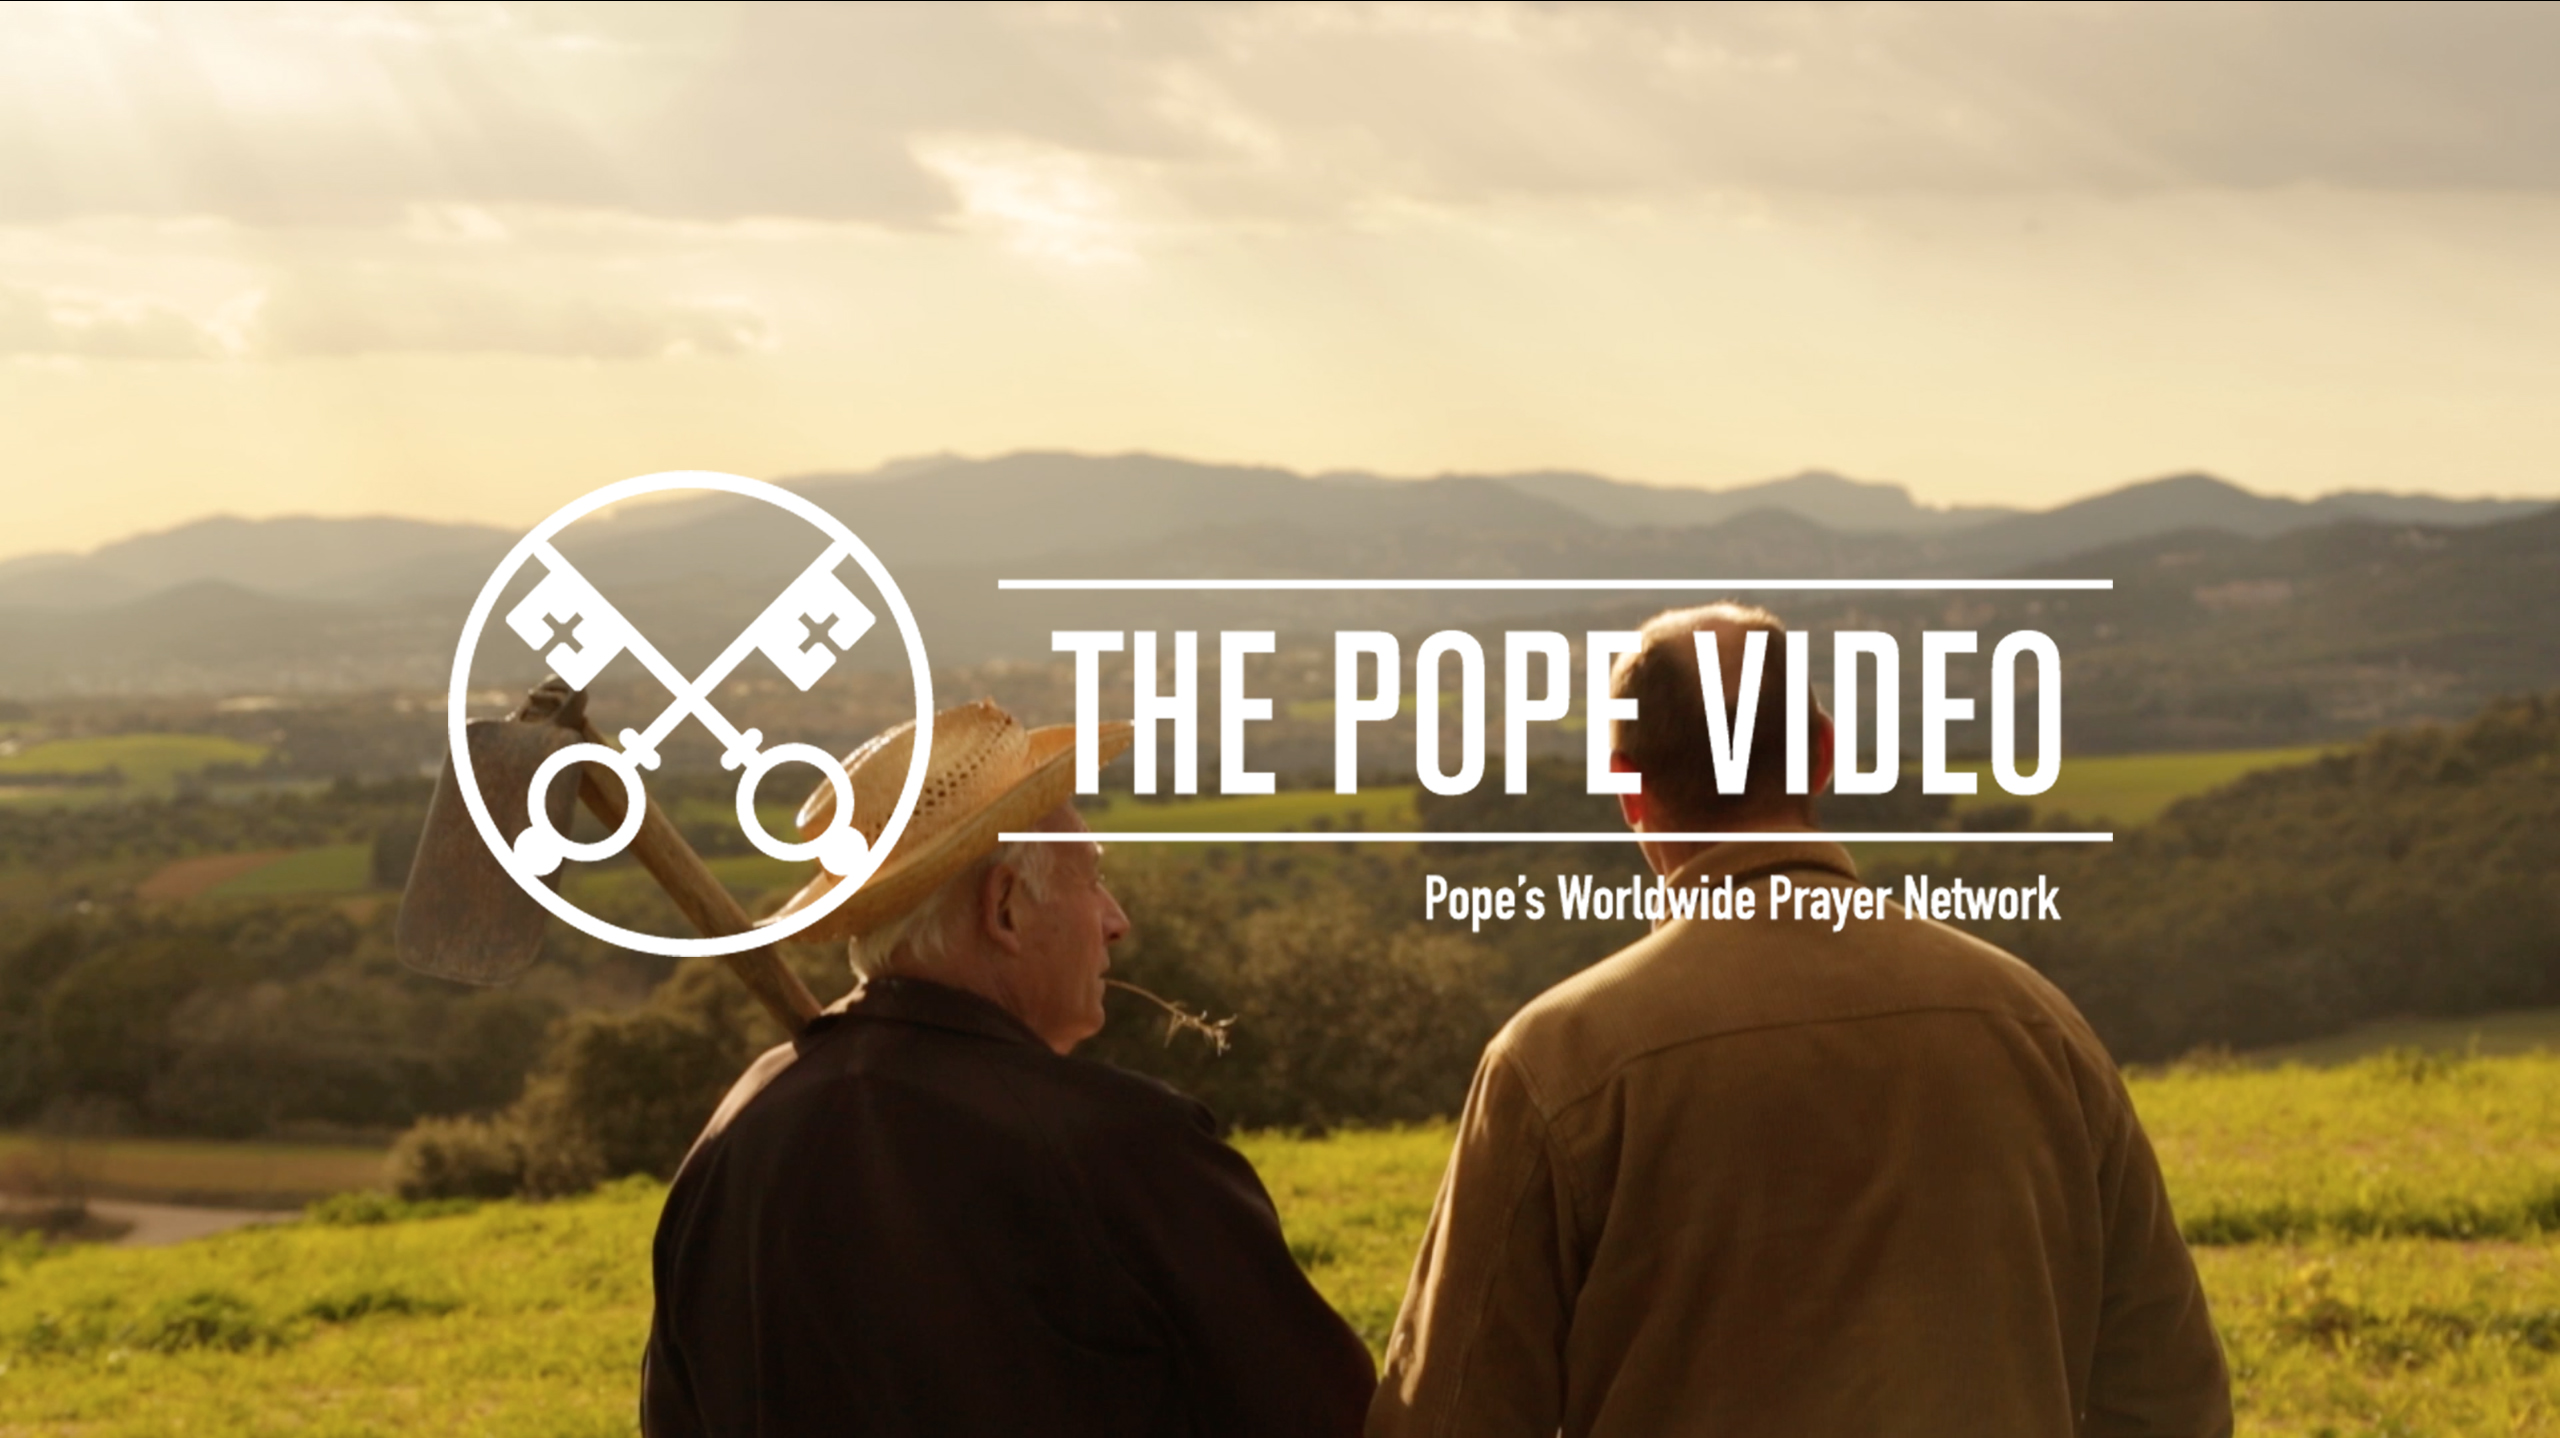 The Pope Video April 2016 (Official Image)